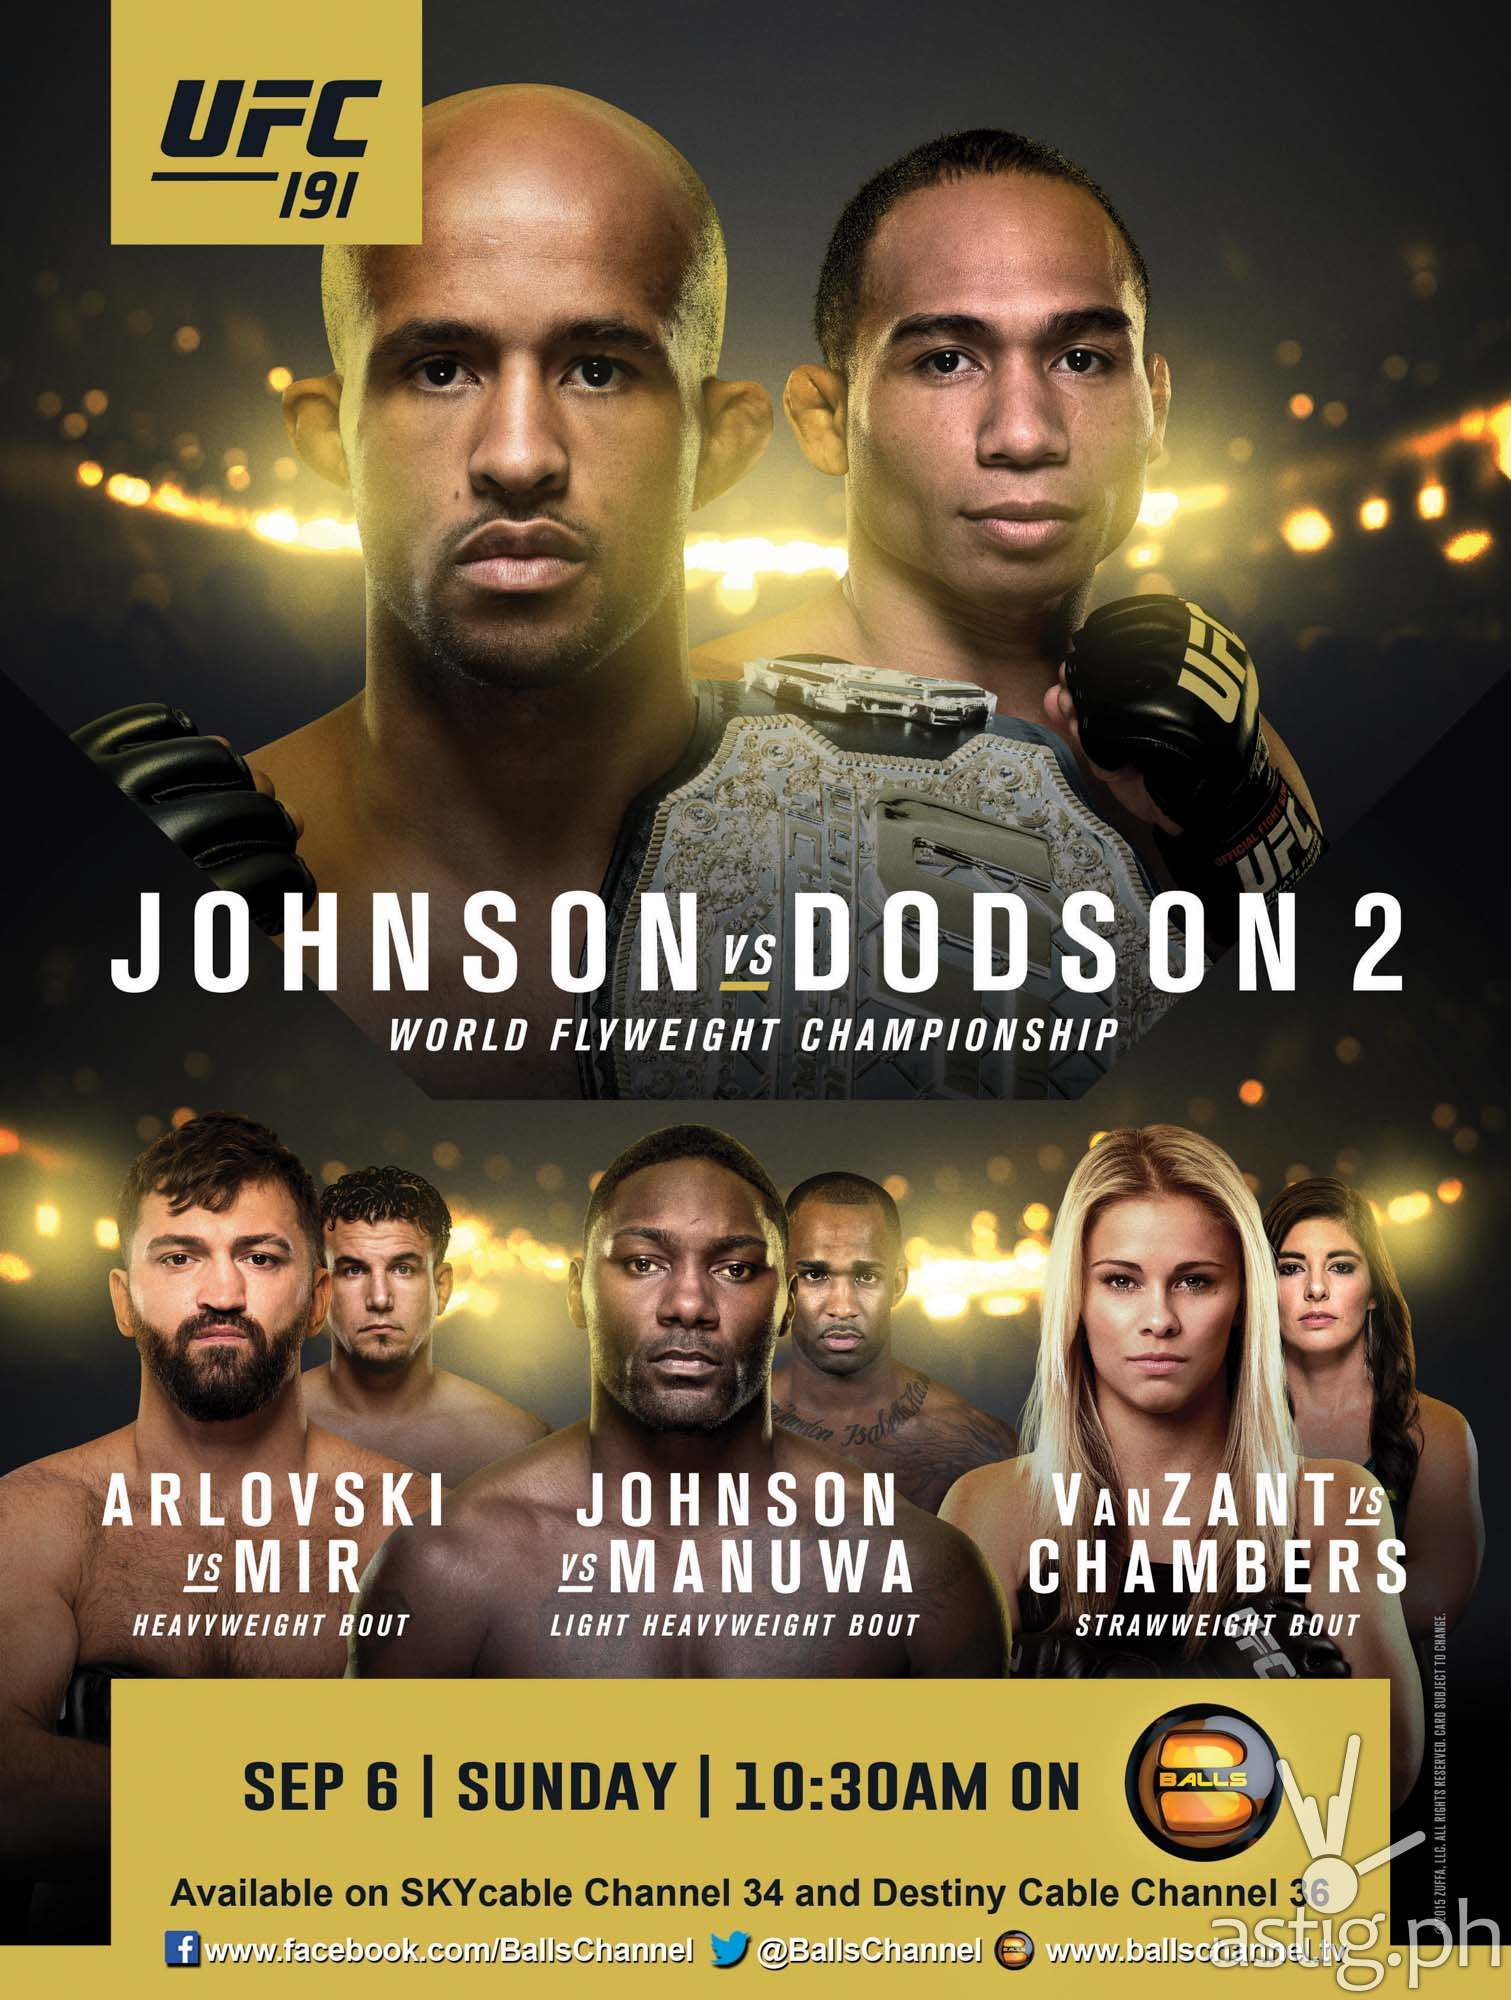 UFC191 Johnson vs Dodson